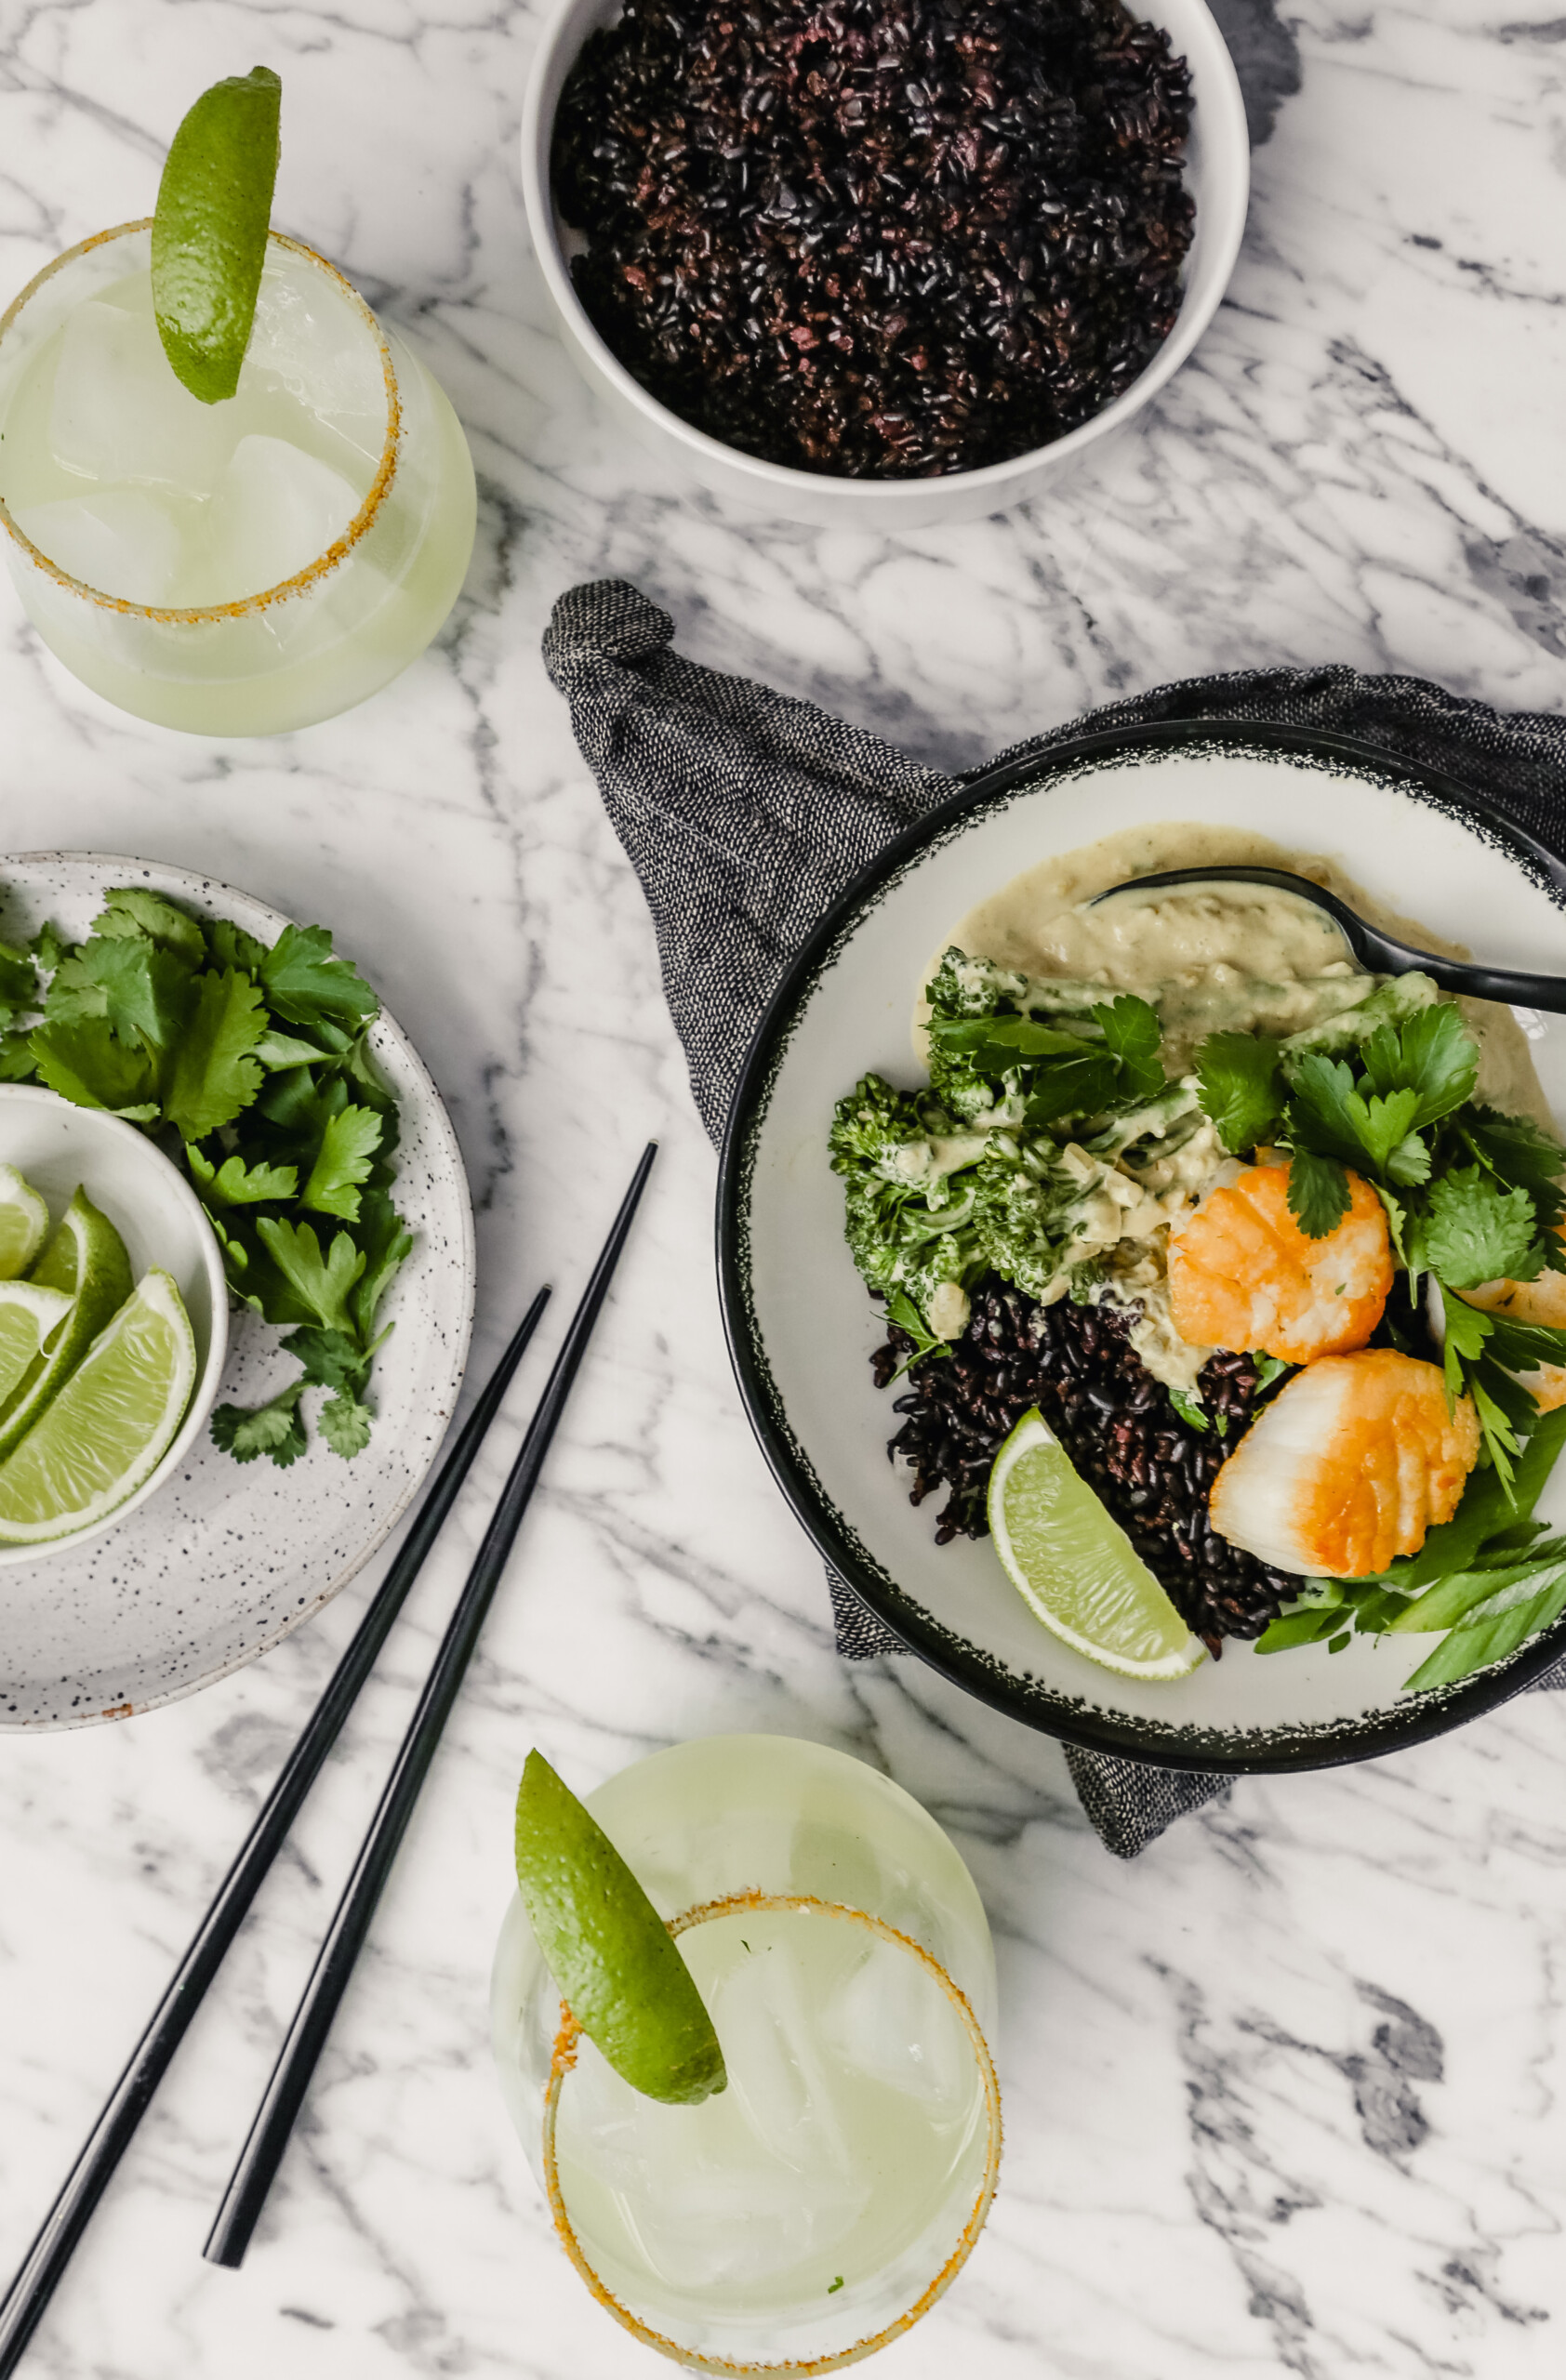 Photograph of a bowl filled with green coconut curry, black rice, broccolini and golden scallops set on a marble table with a gray napkin and margaritas set around.